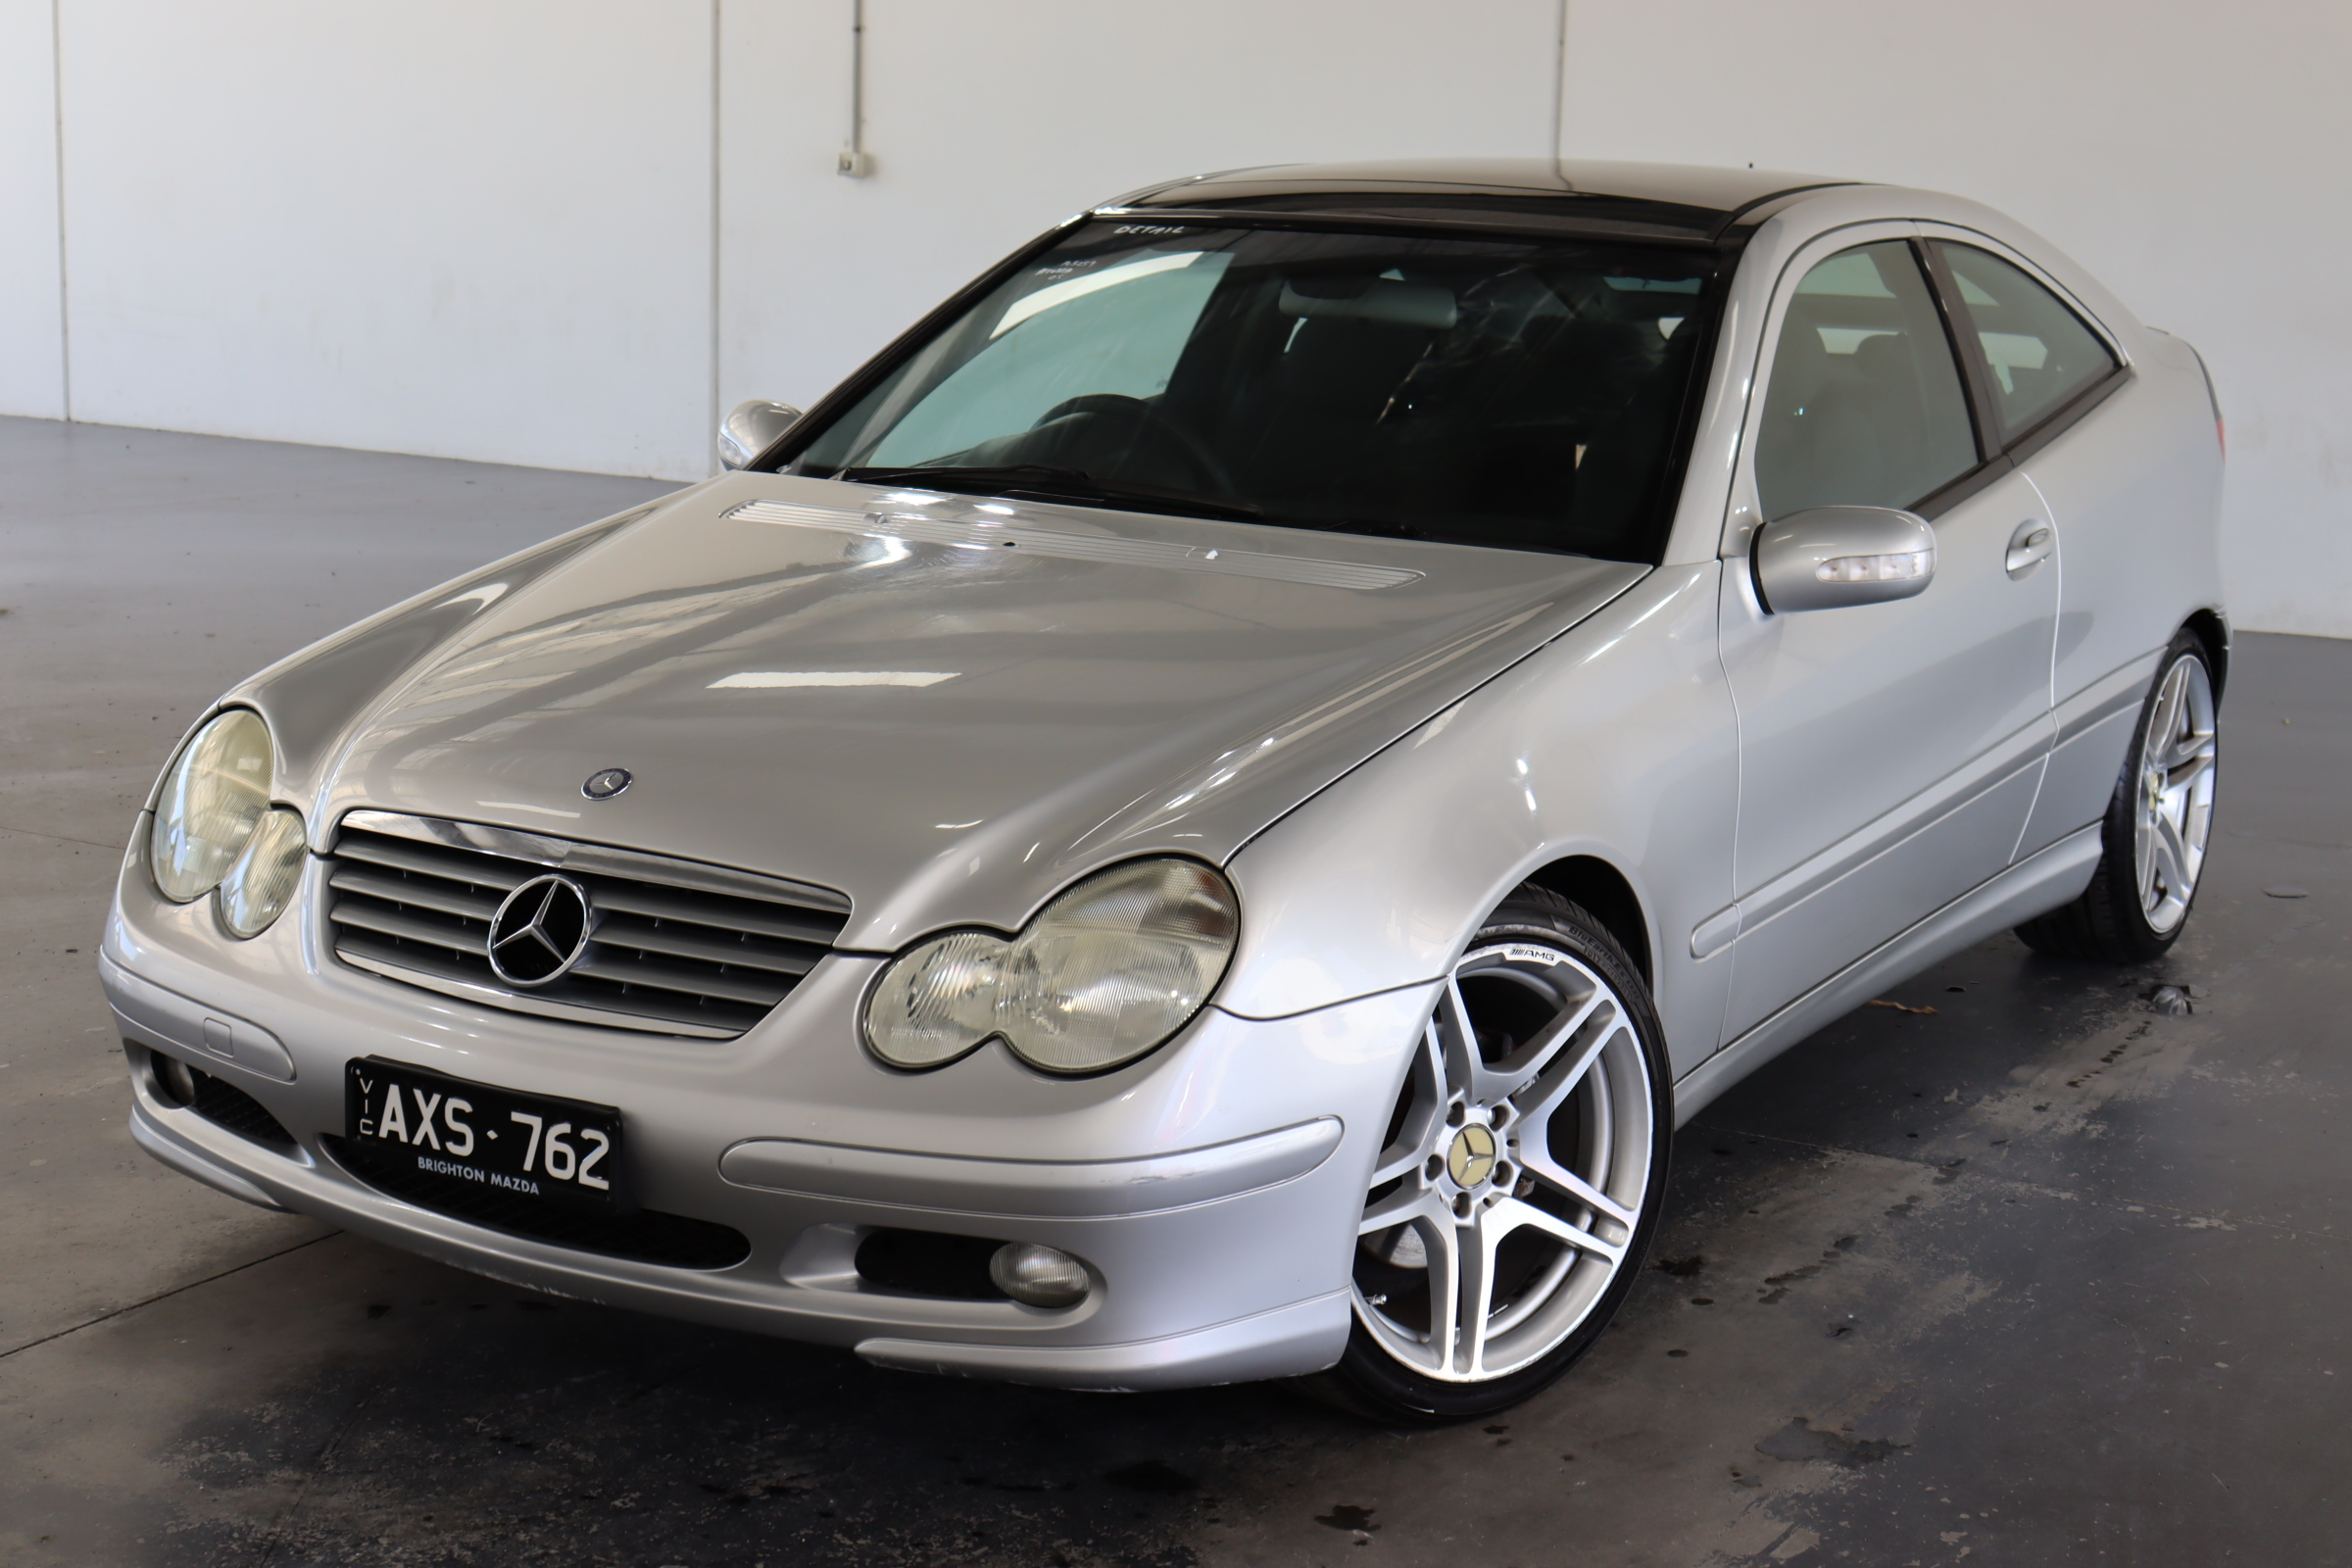 2003 Mercedes Benz C200 Kompressor CL203 Automatic Coupe